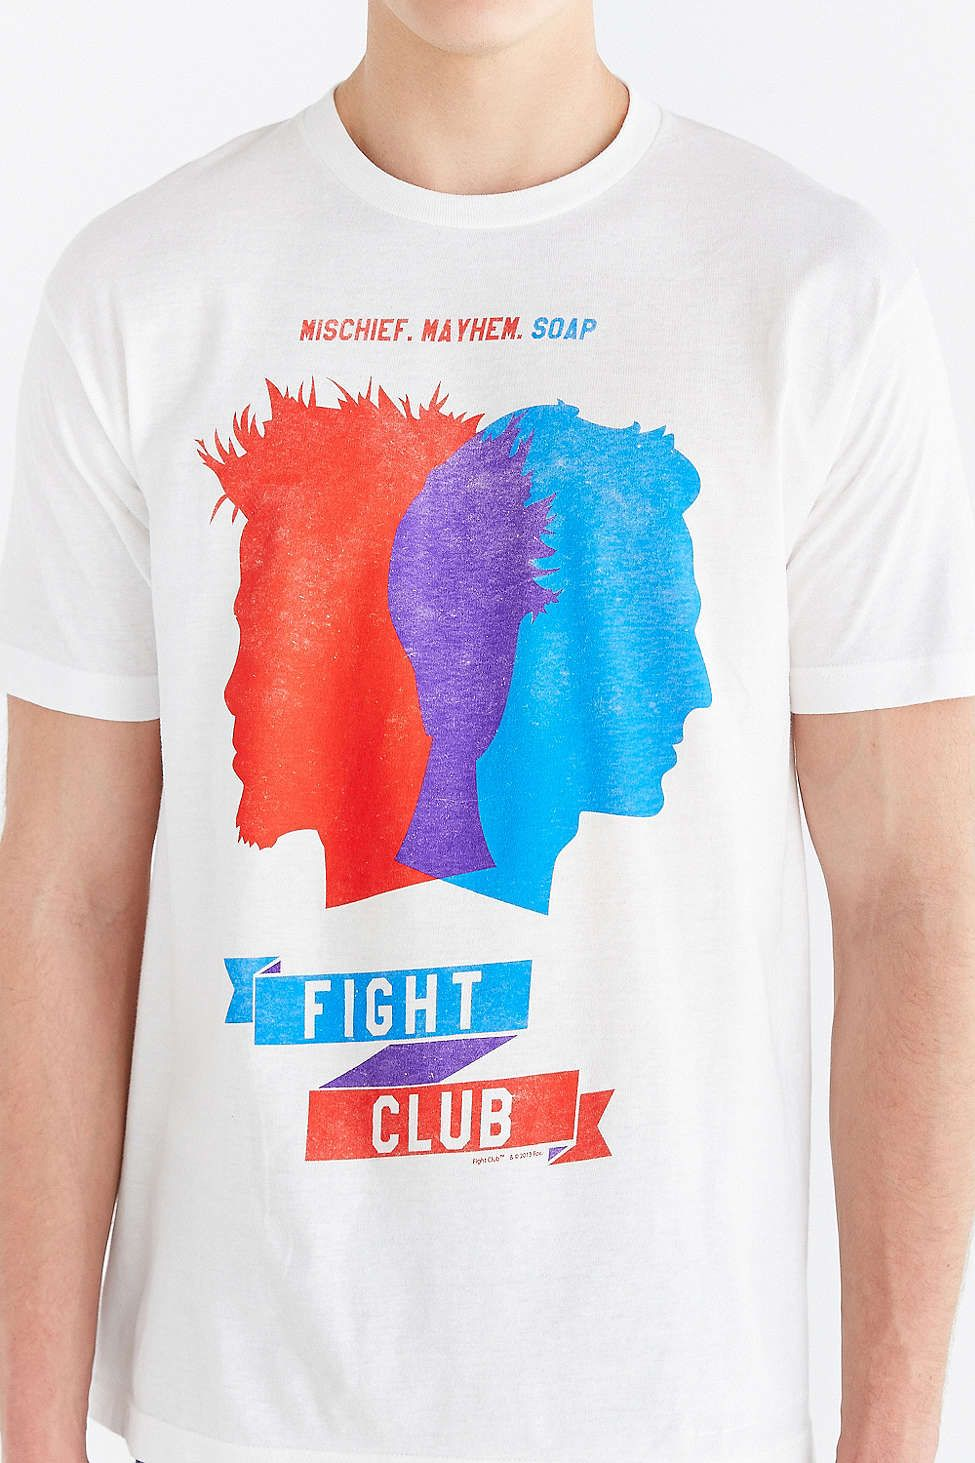 Hoodie Mischief Mayhem Soap Fight Inspired Club Girls Top